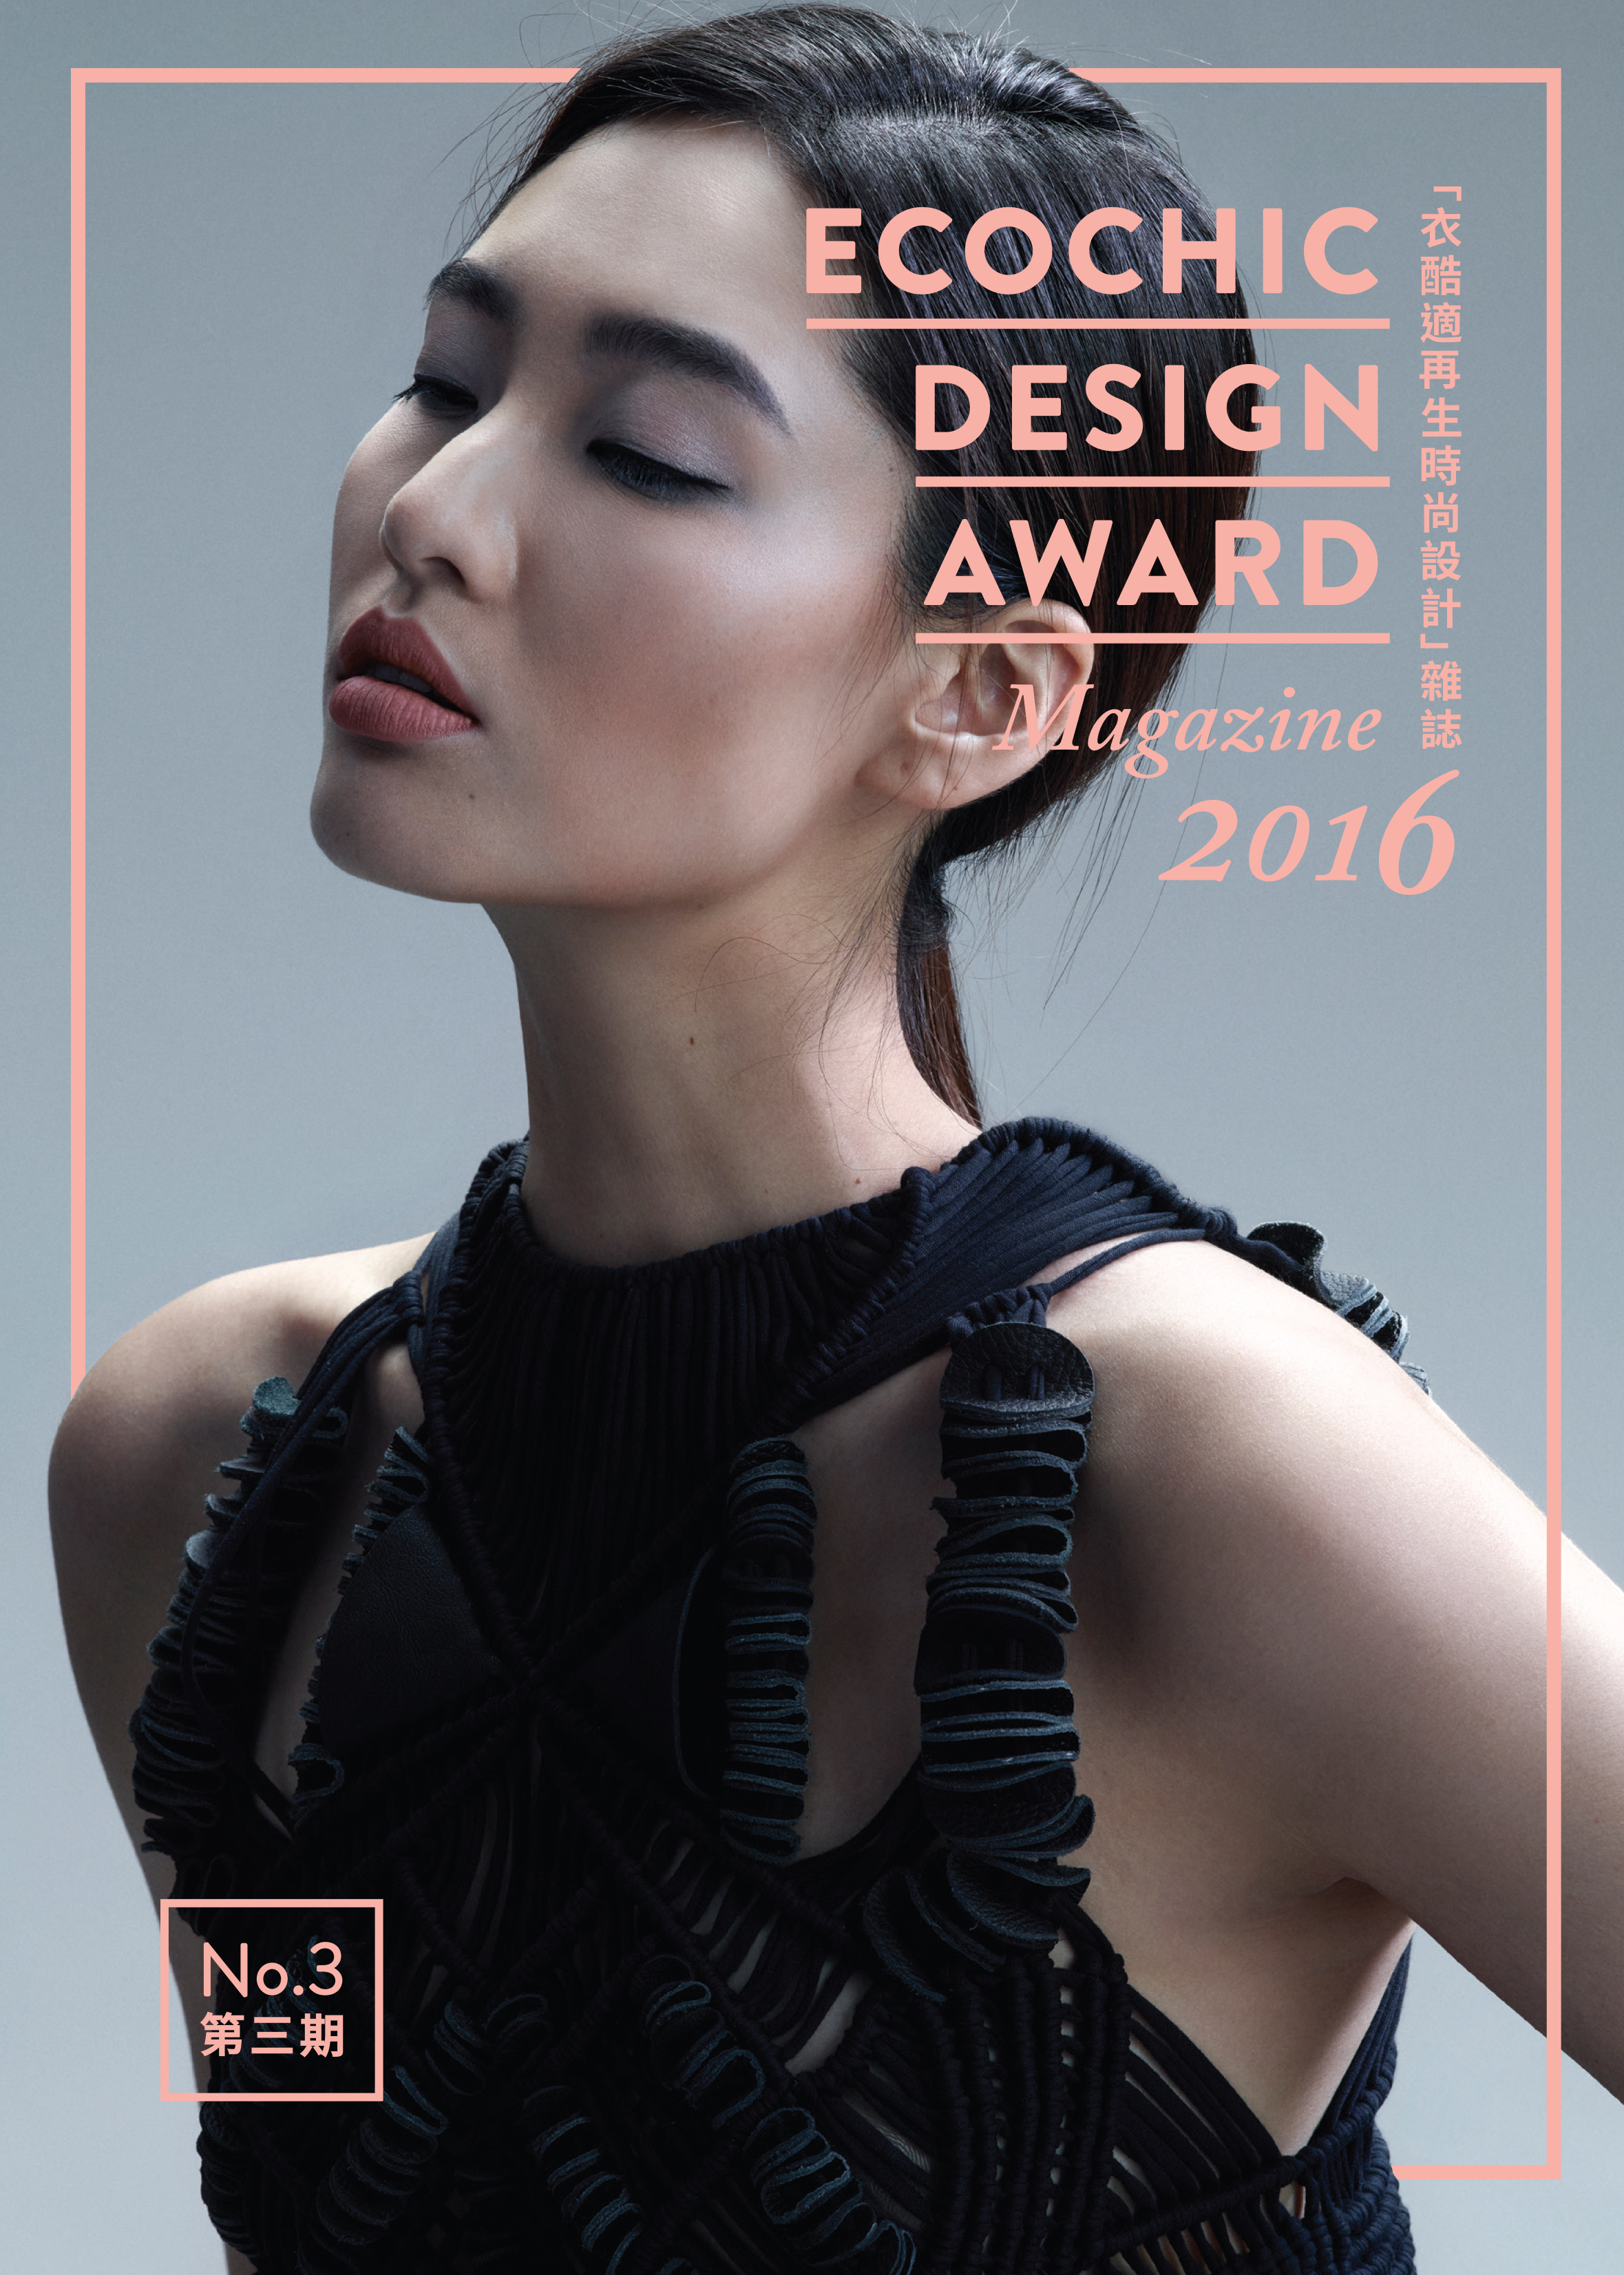 The EcoChic Design Award Magazine The EcoChic Design Award Magazine 2016